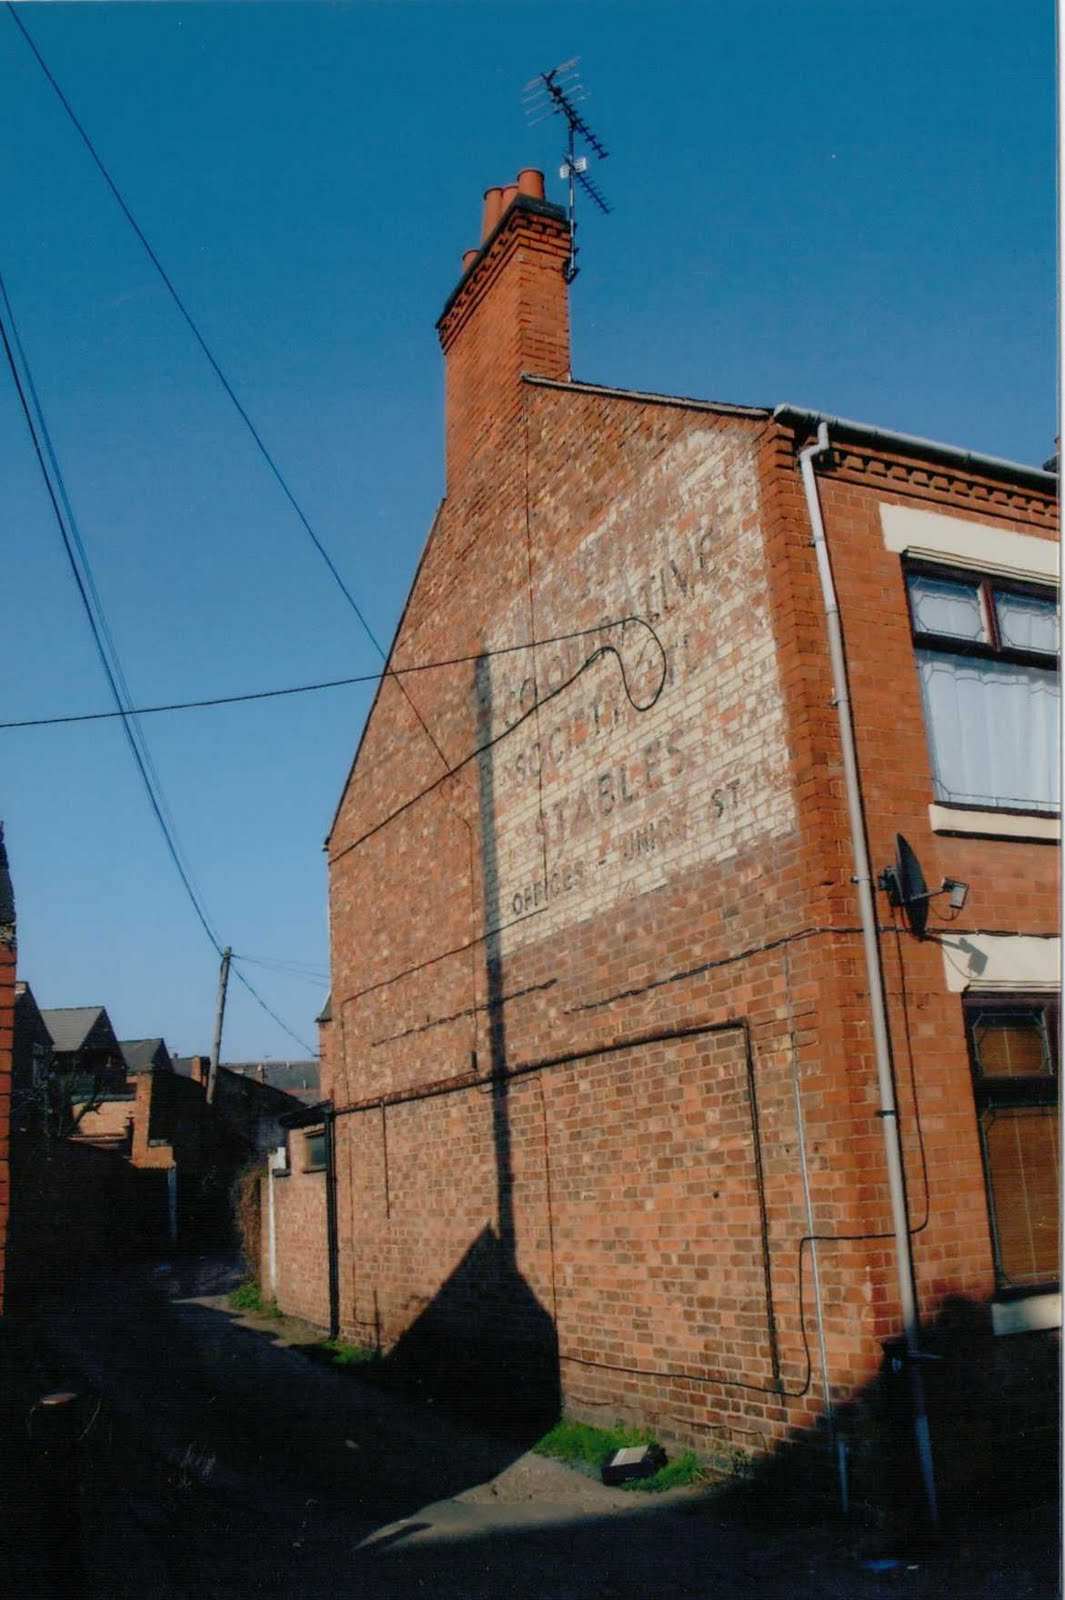 (The other entry to the stables on Battenberg Road as it is now. The space houses several small businesses. There aren't many of those wall-painted signs ...